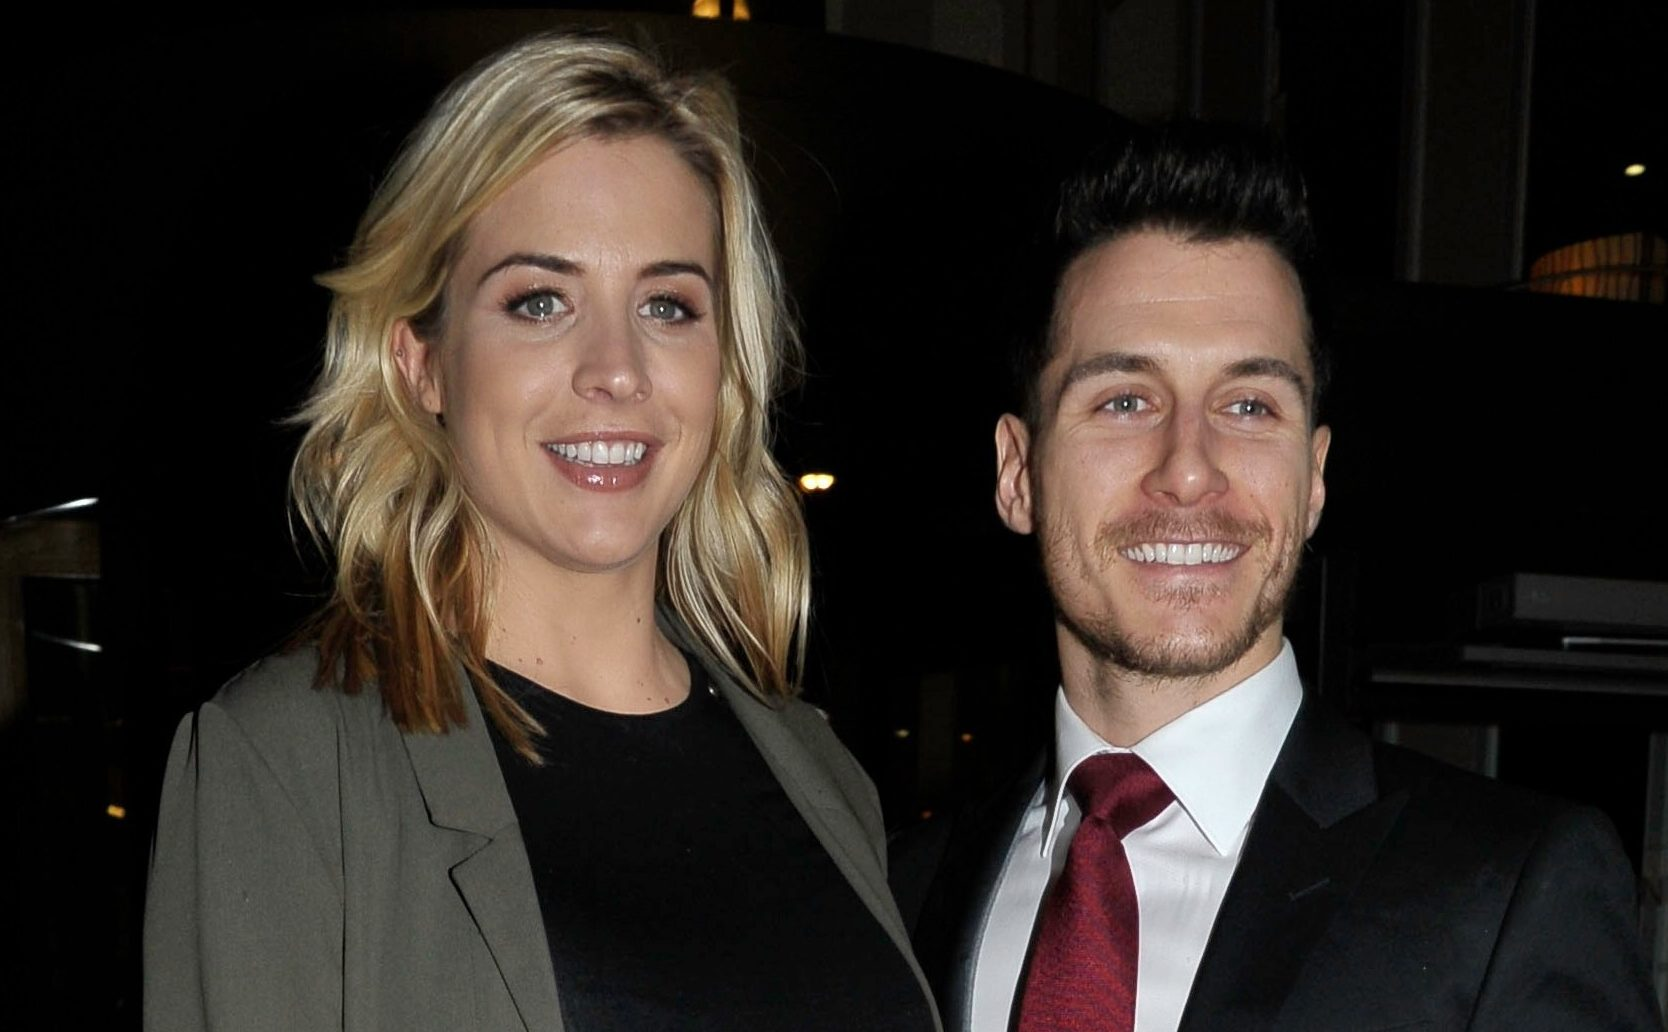 Gemma Atkinson and Gorka Marquez tease fans with exciting reality news